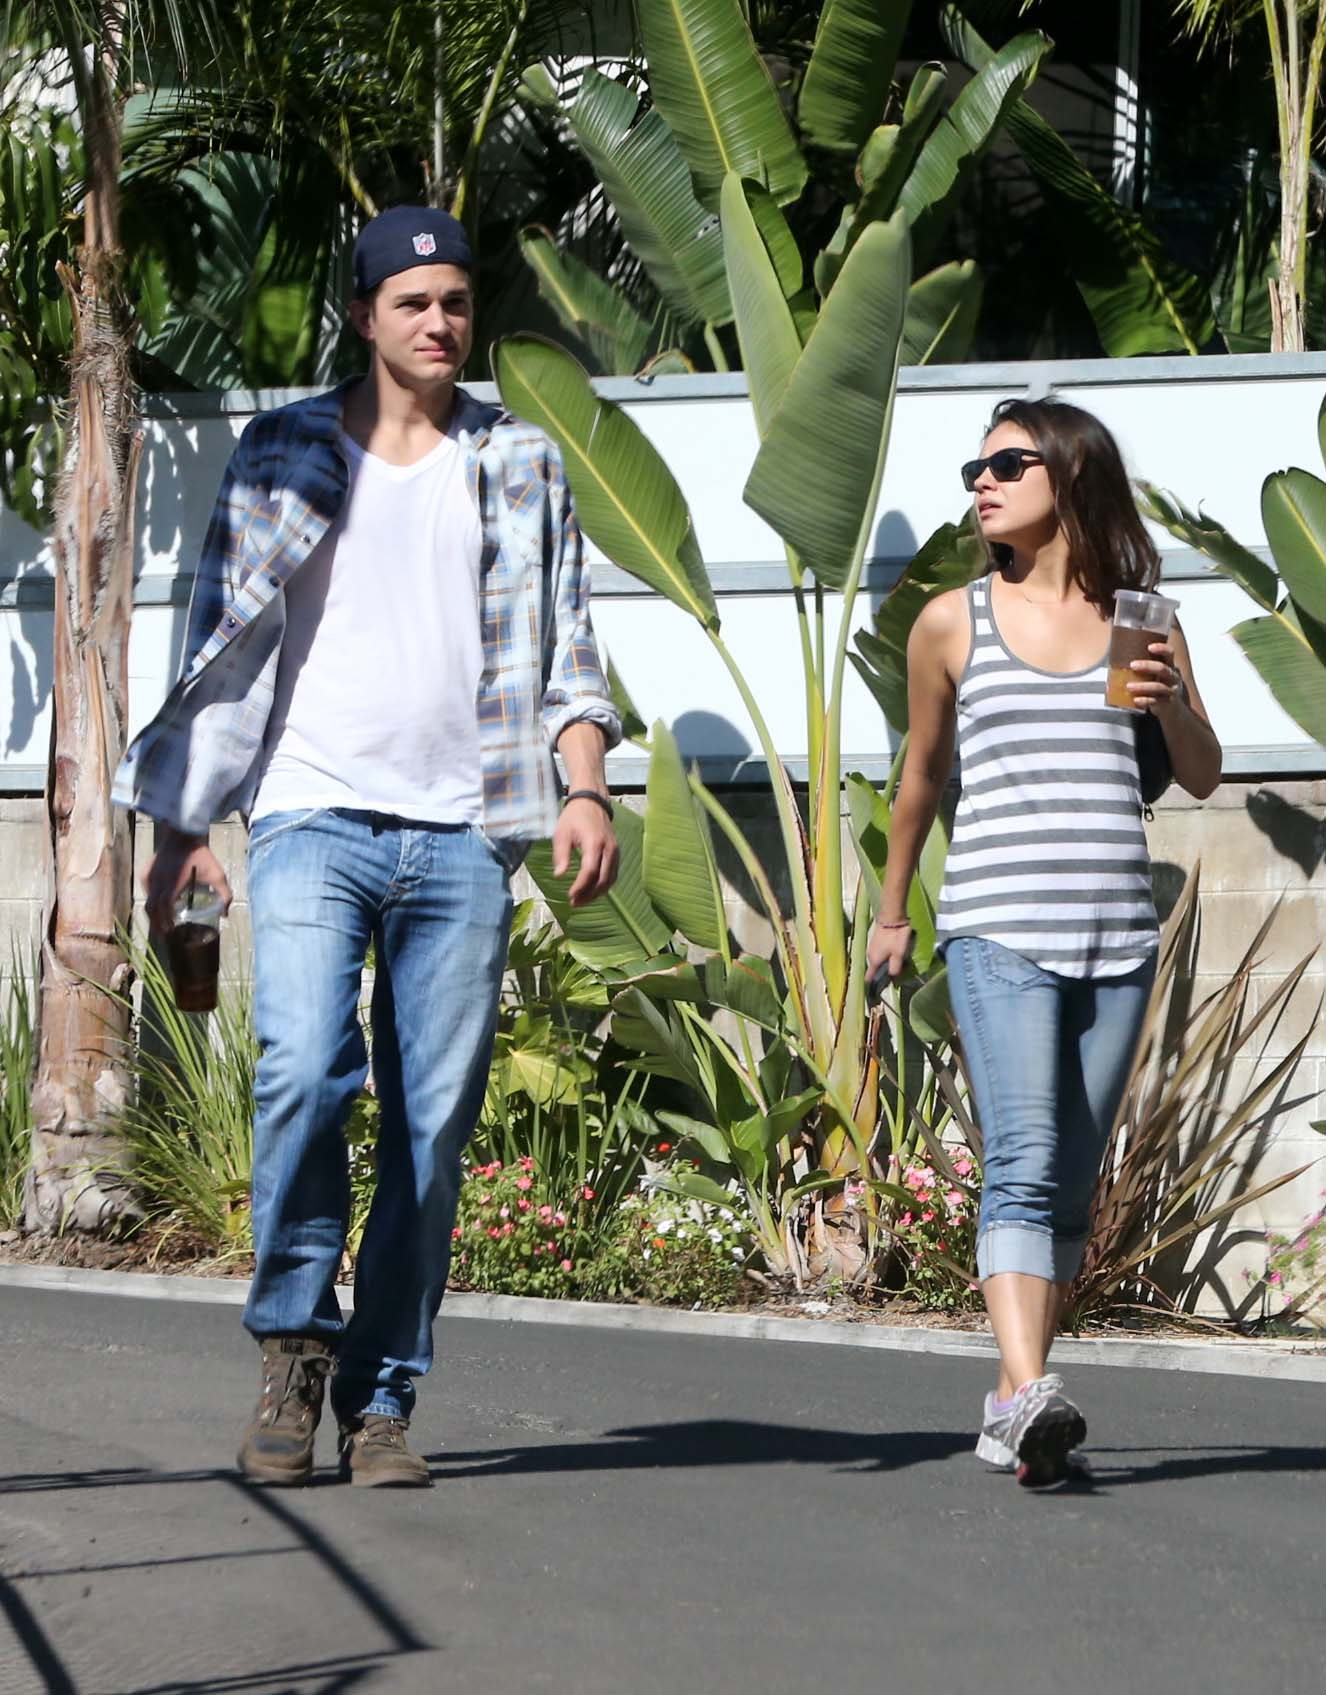 Ashton Kutcher and Mila Kunis left a friend's house together in LA.